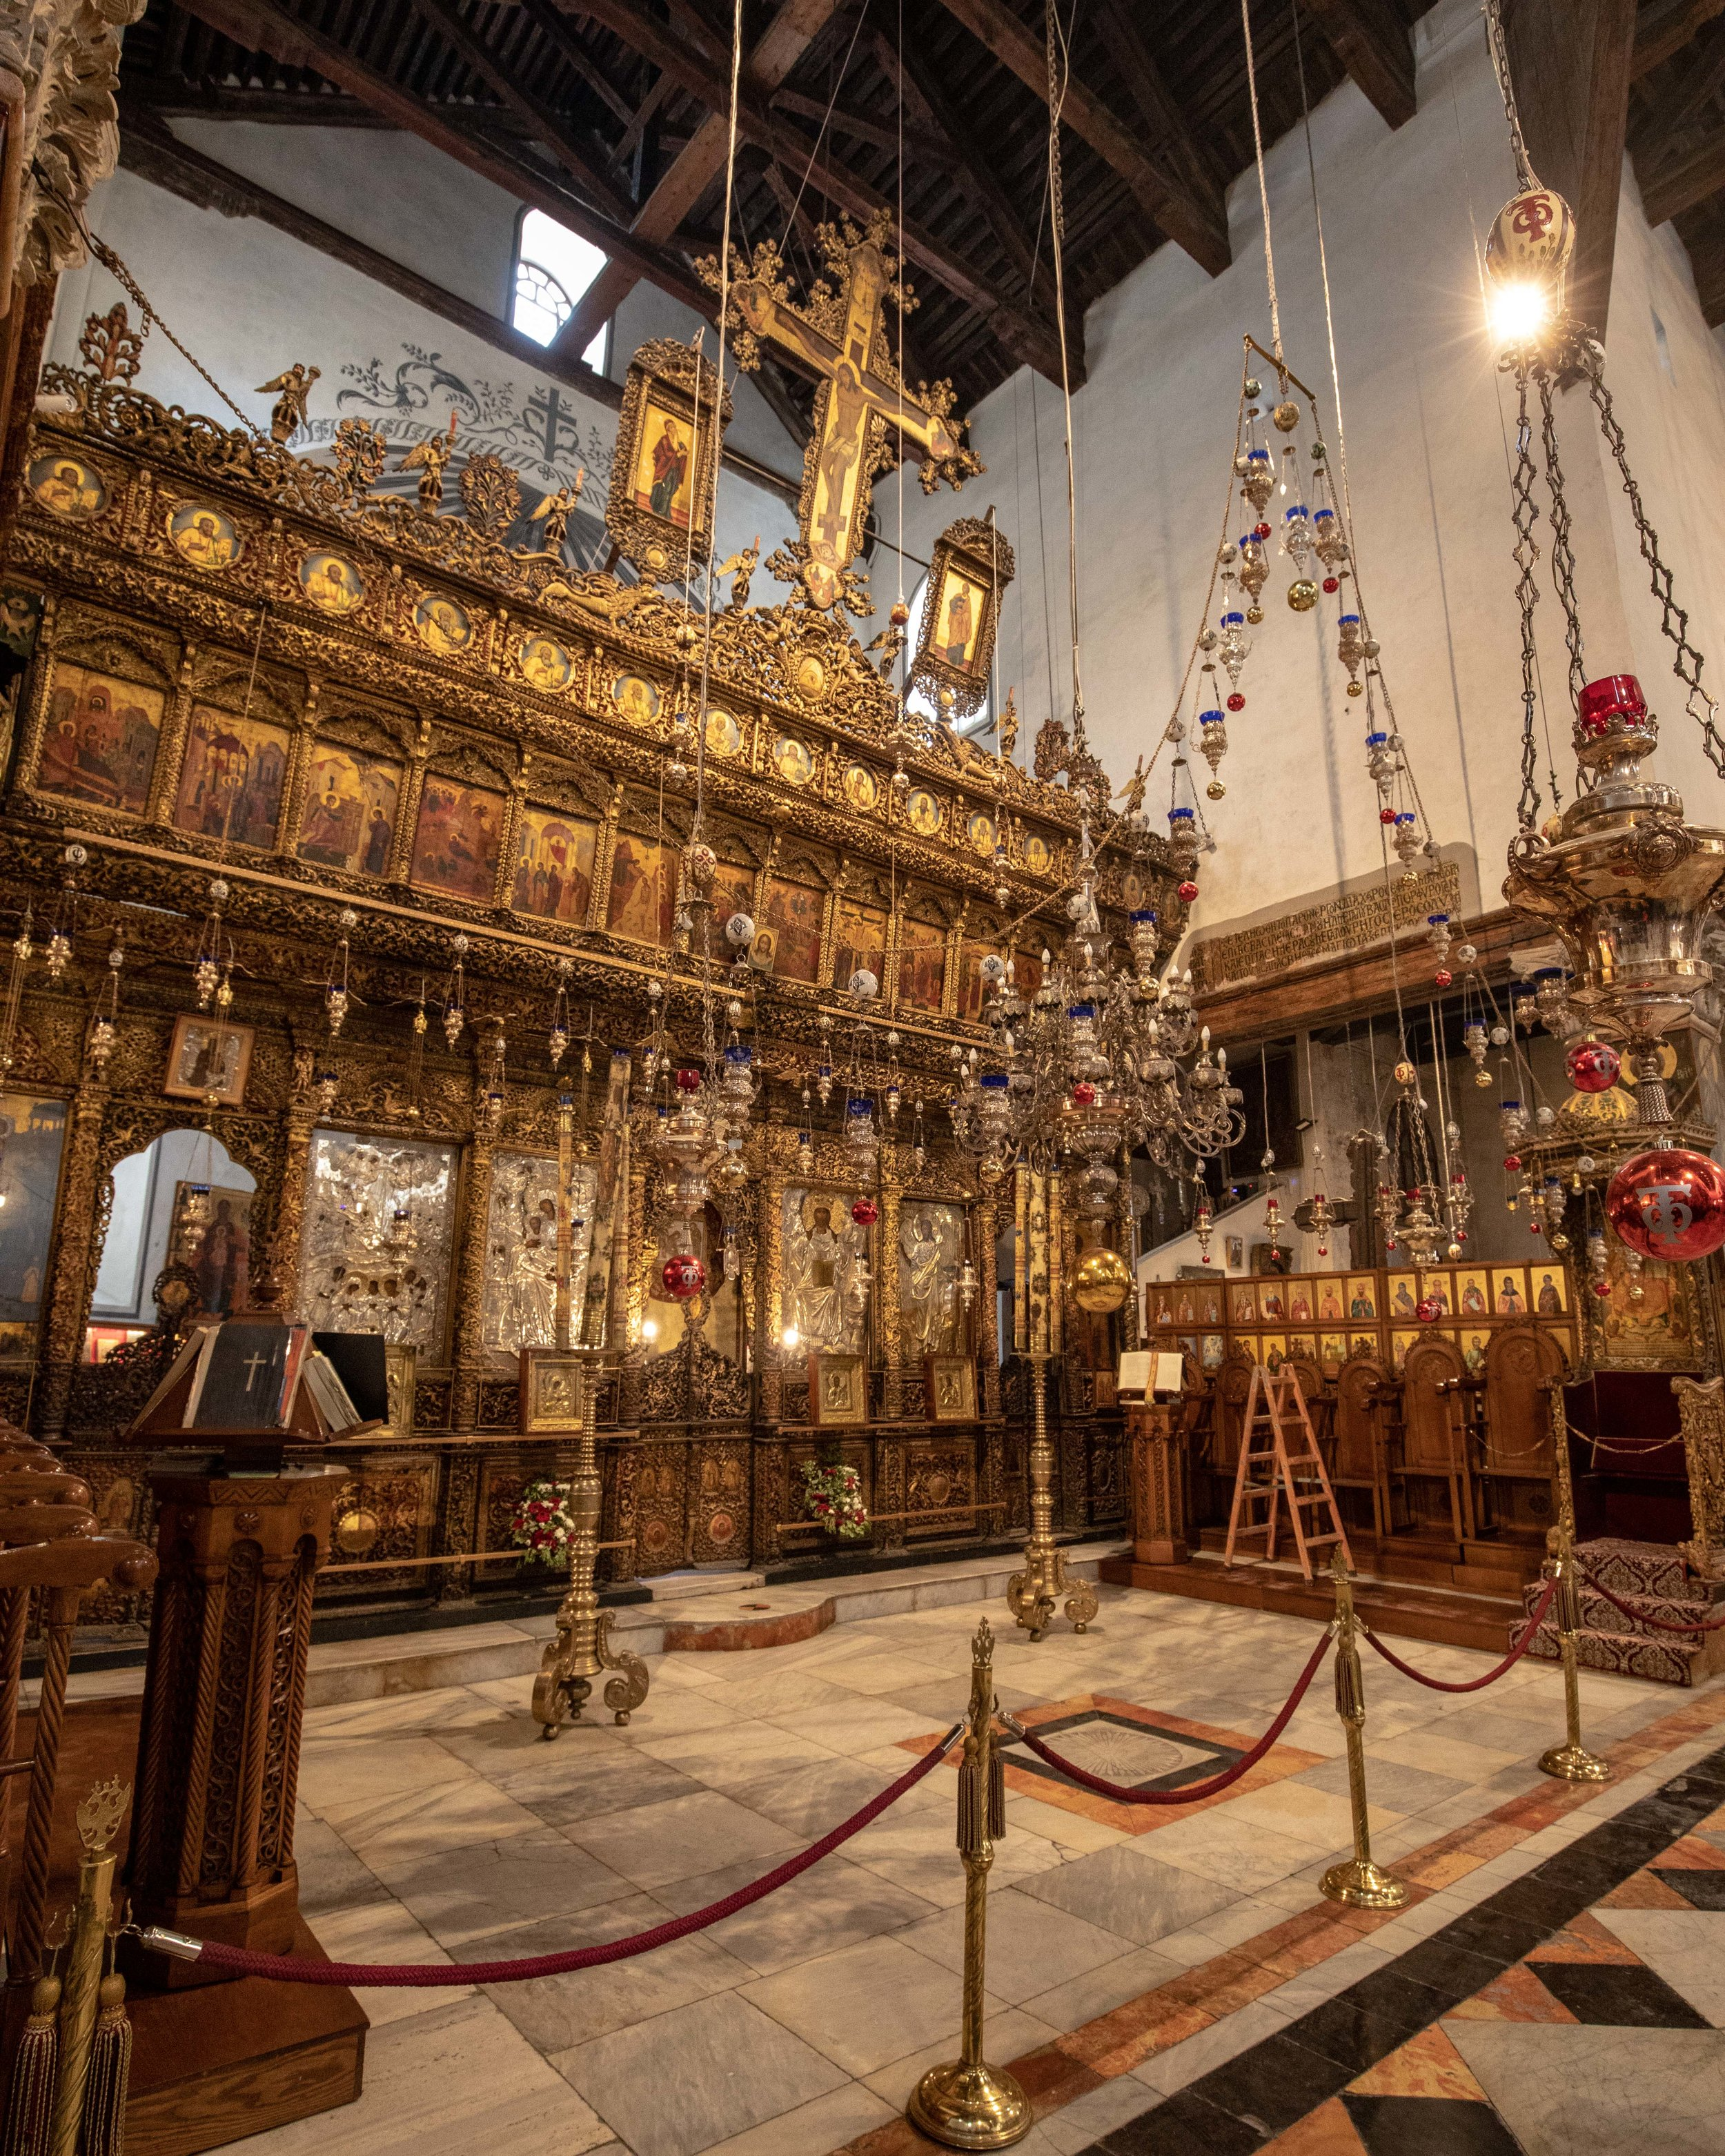 The interior of the Church of the Nativity - How to get to Bethlehem